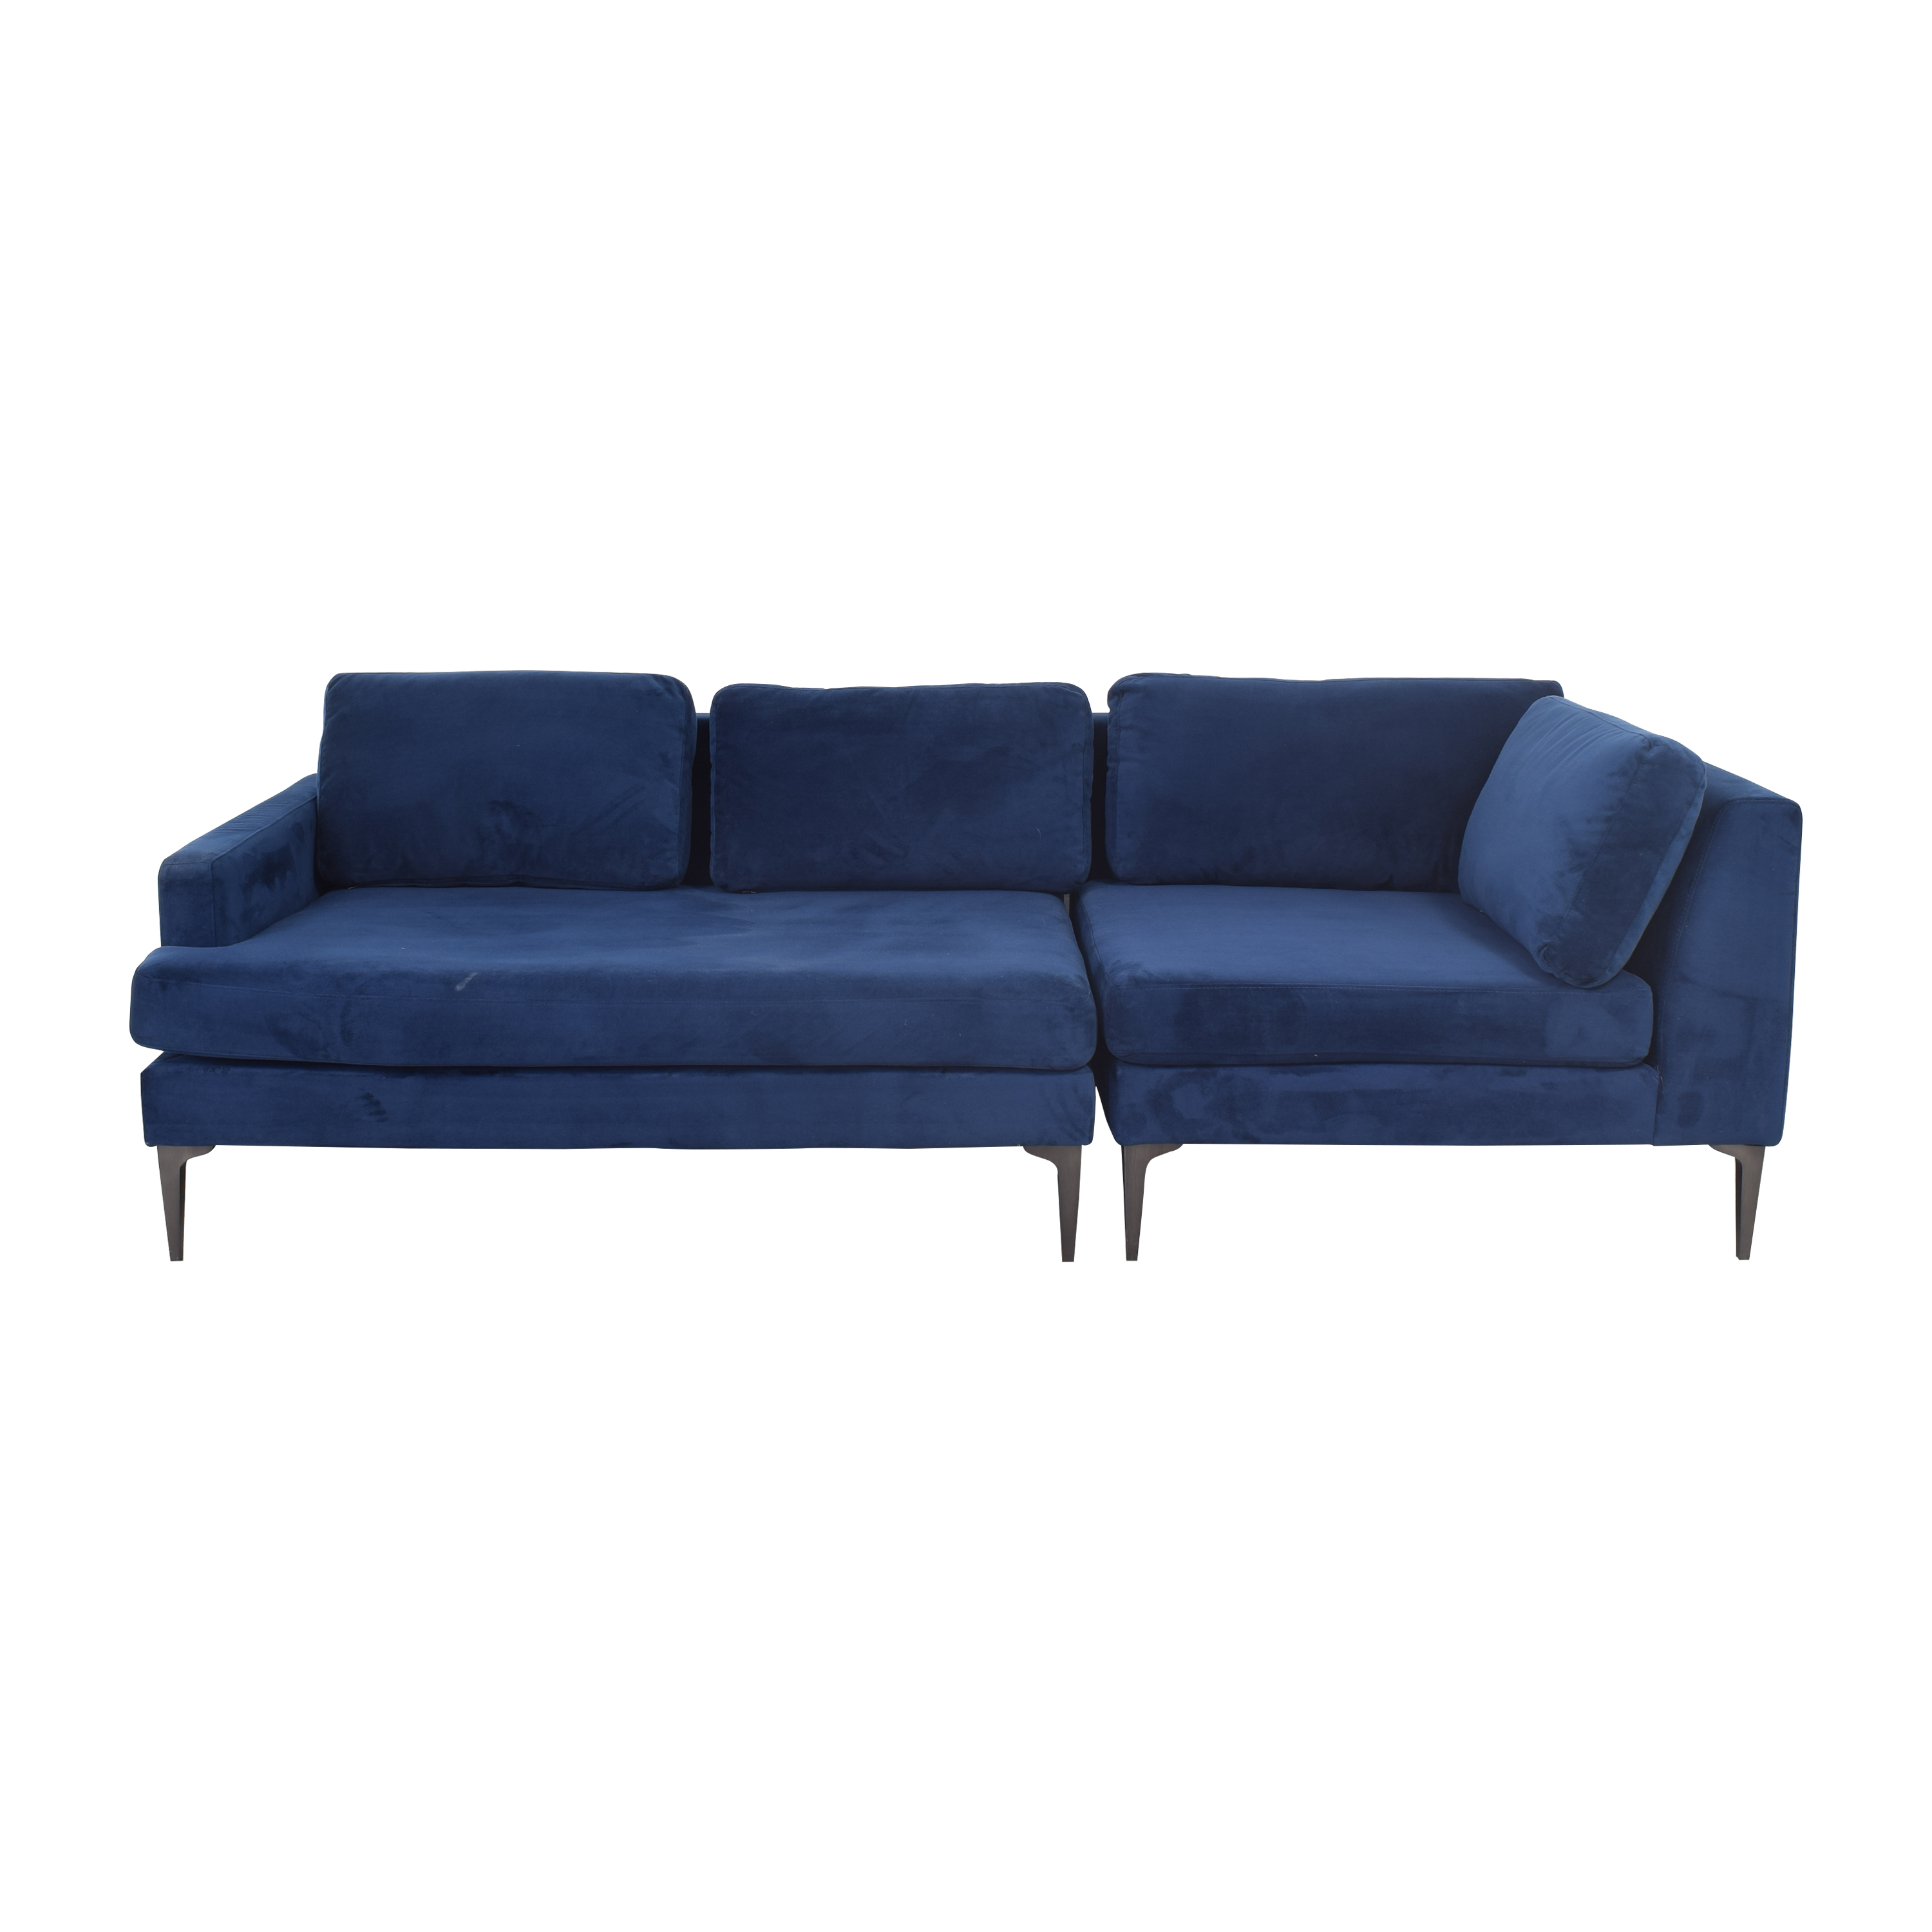 West Elm West Elm Andes 3-Piece Chaise Sectional for sale